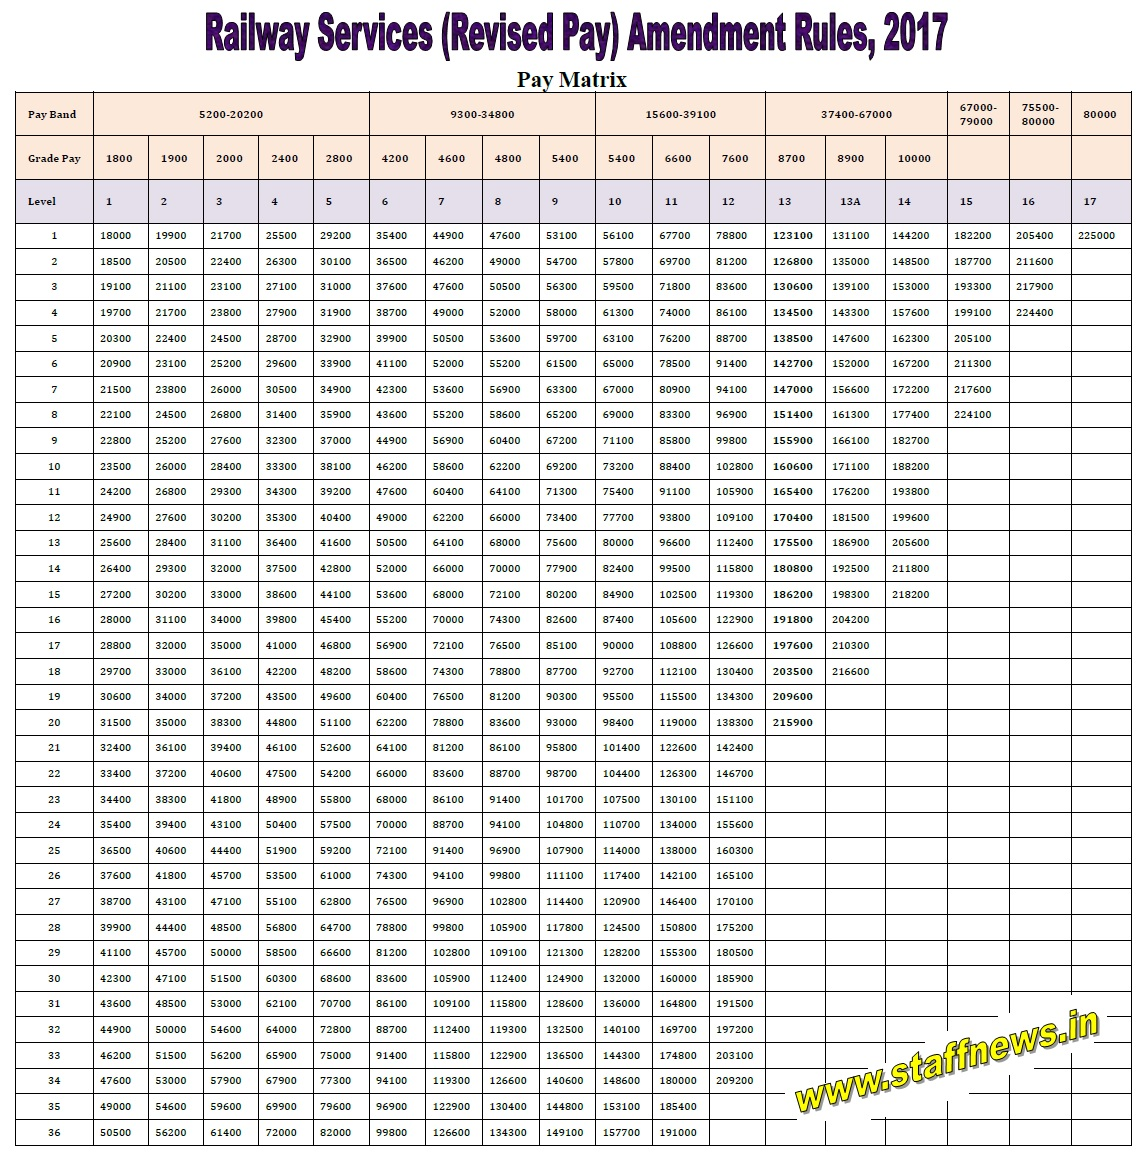 7th-cpc-railway-rp-rules-2017-pay-matrix